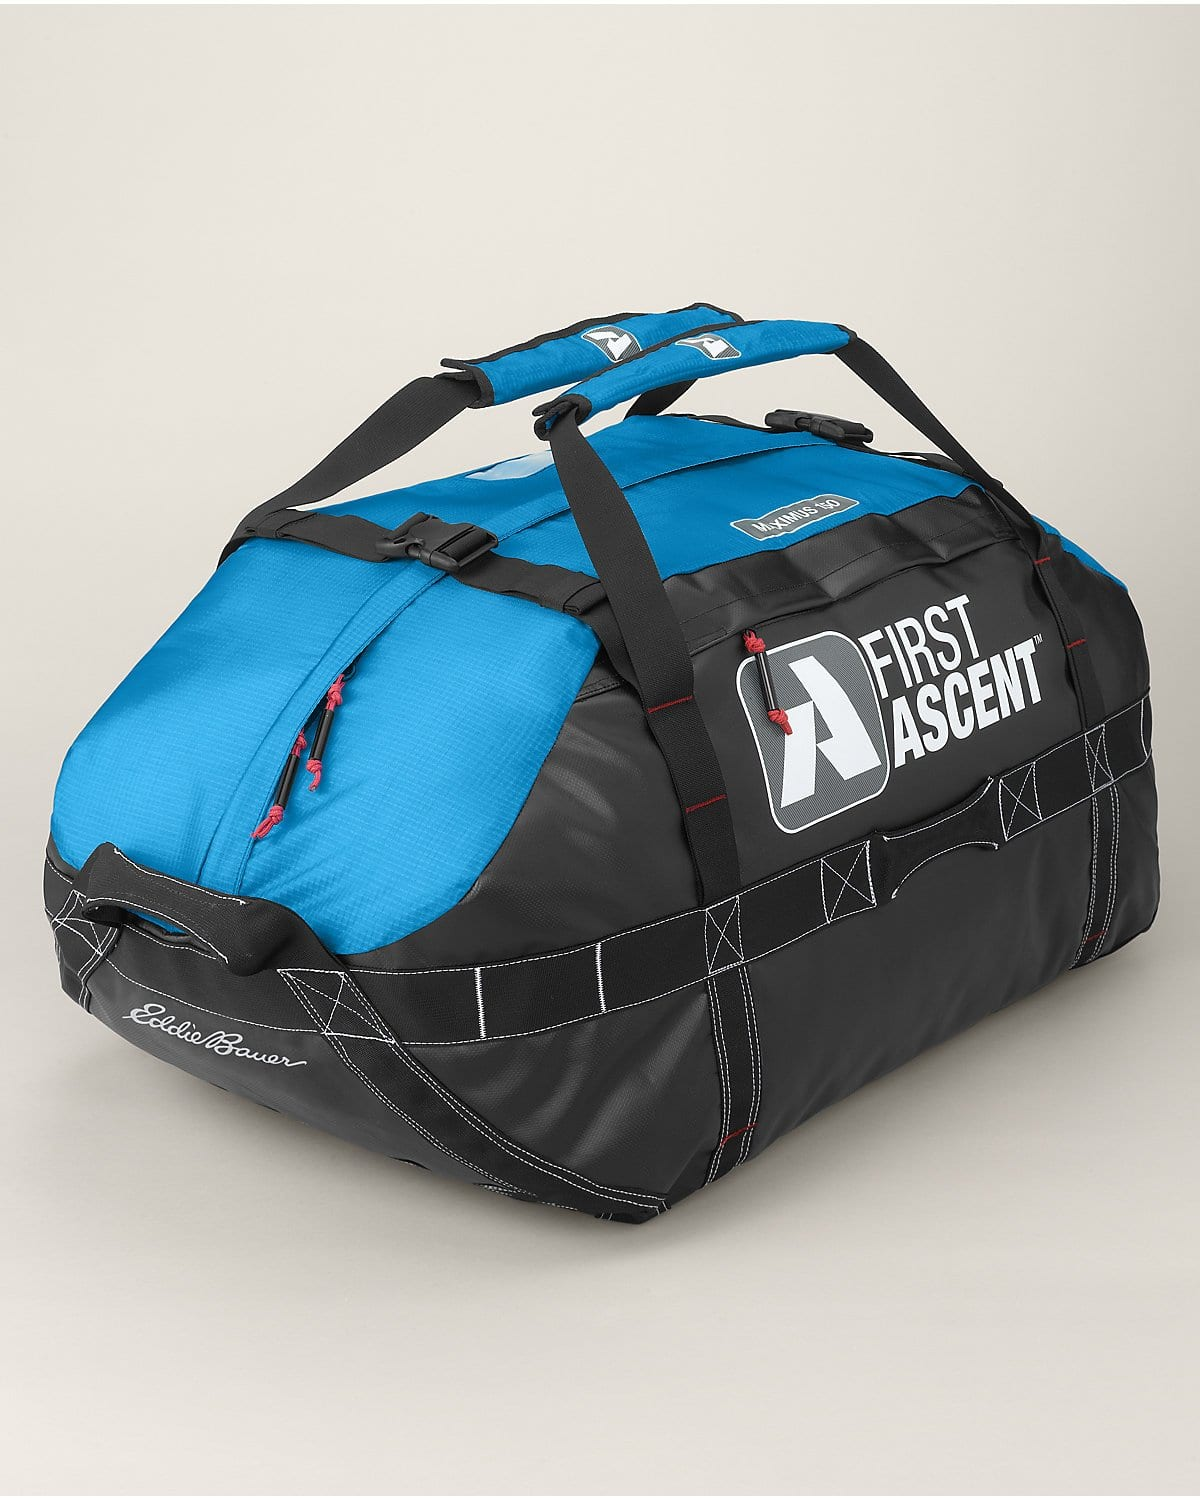 First Ascent Maximus Duffel Bag